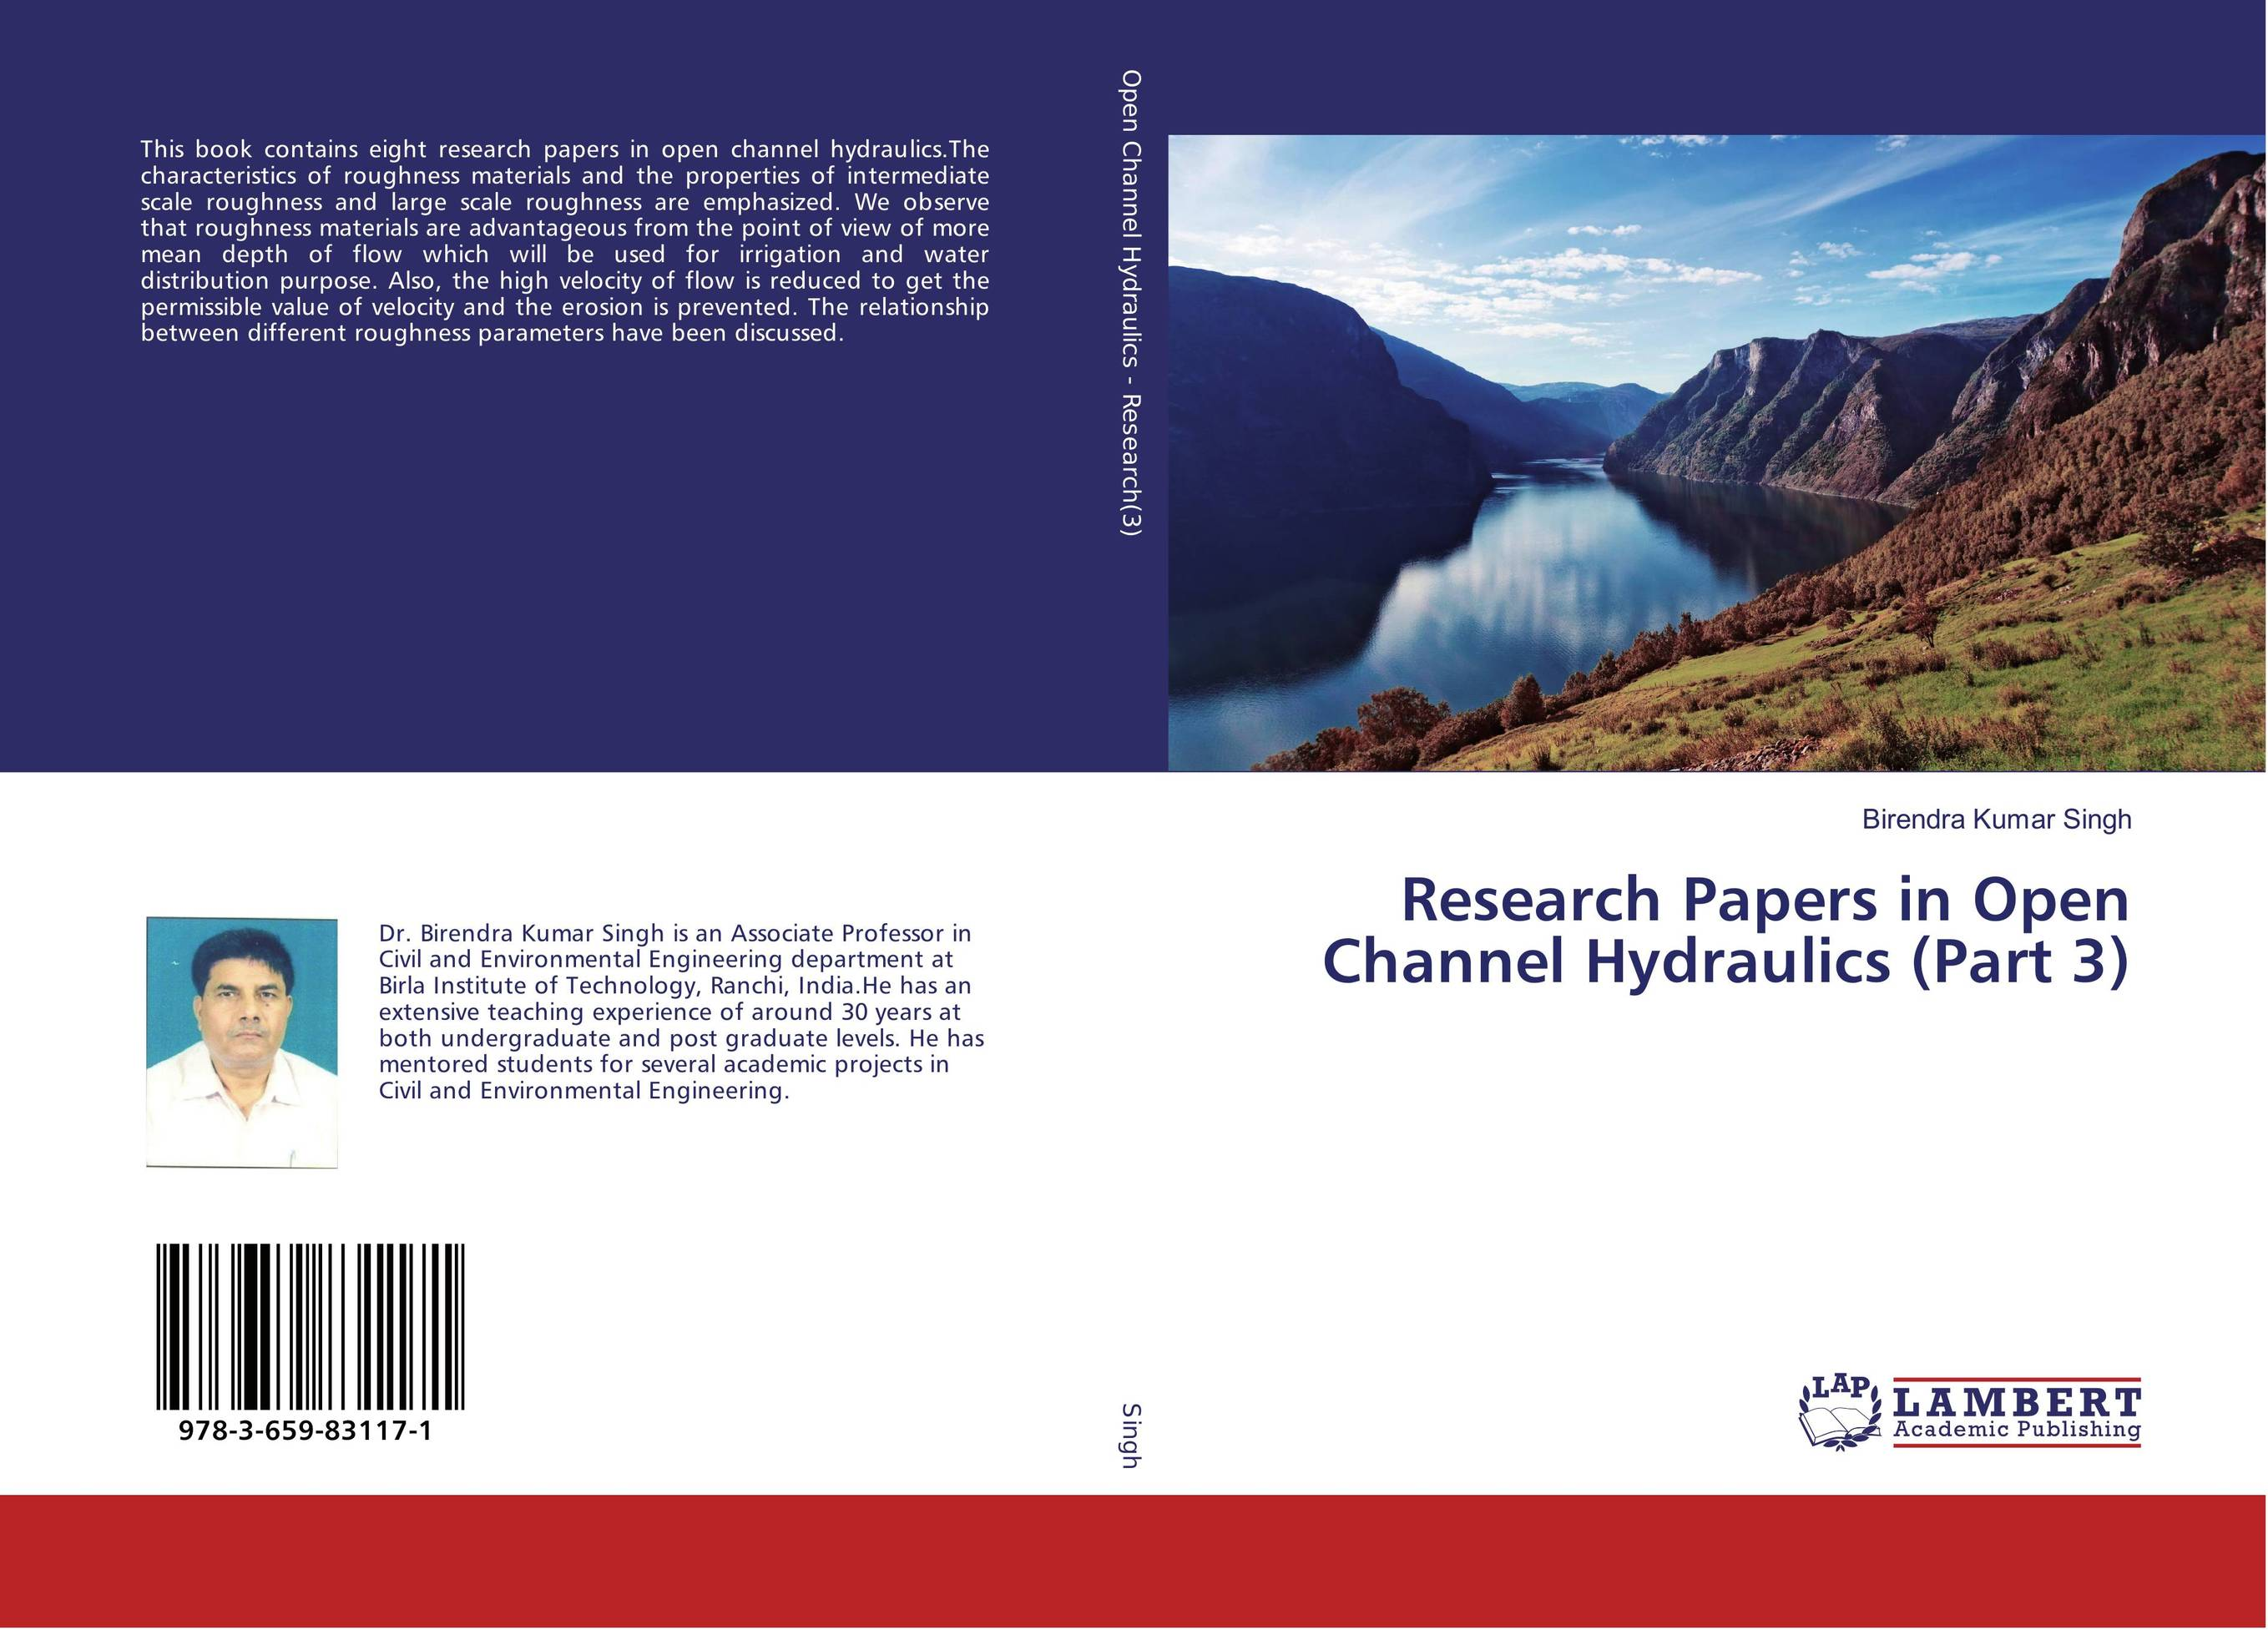 Research Papers in Open Channel Hydraulics (Part 3)